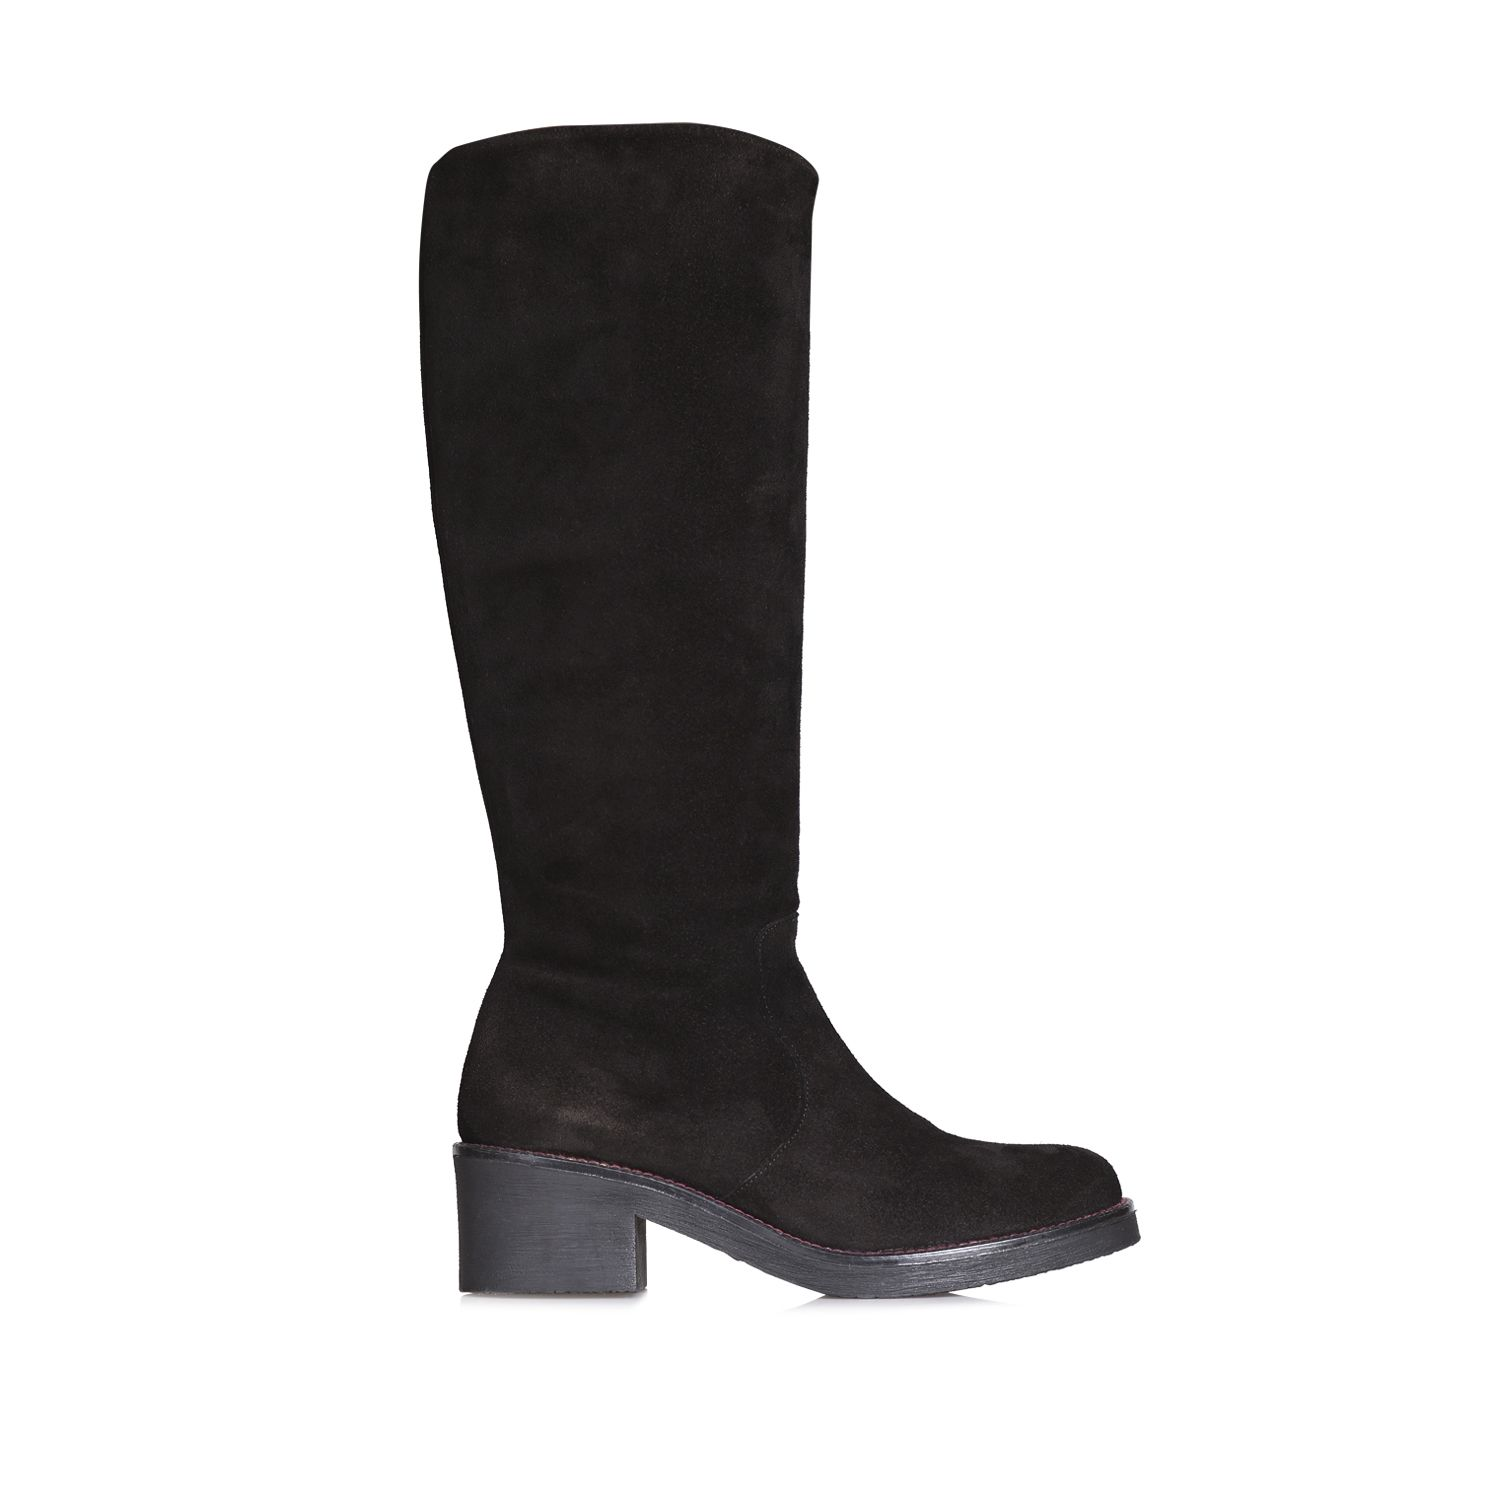 High leg boot for women in suede - PATSY-SY